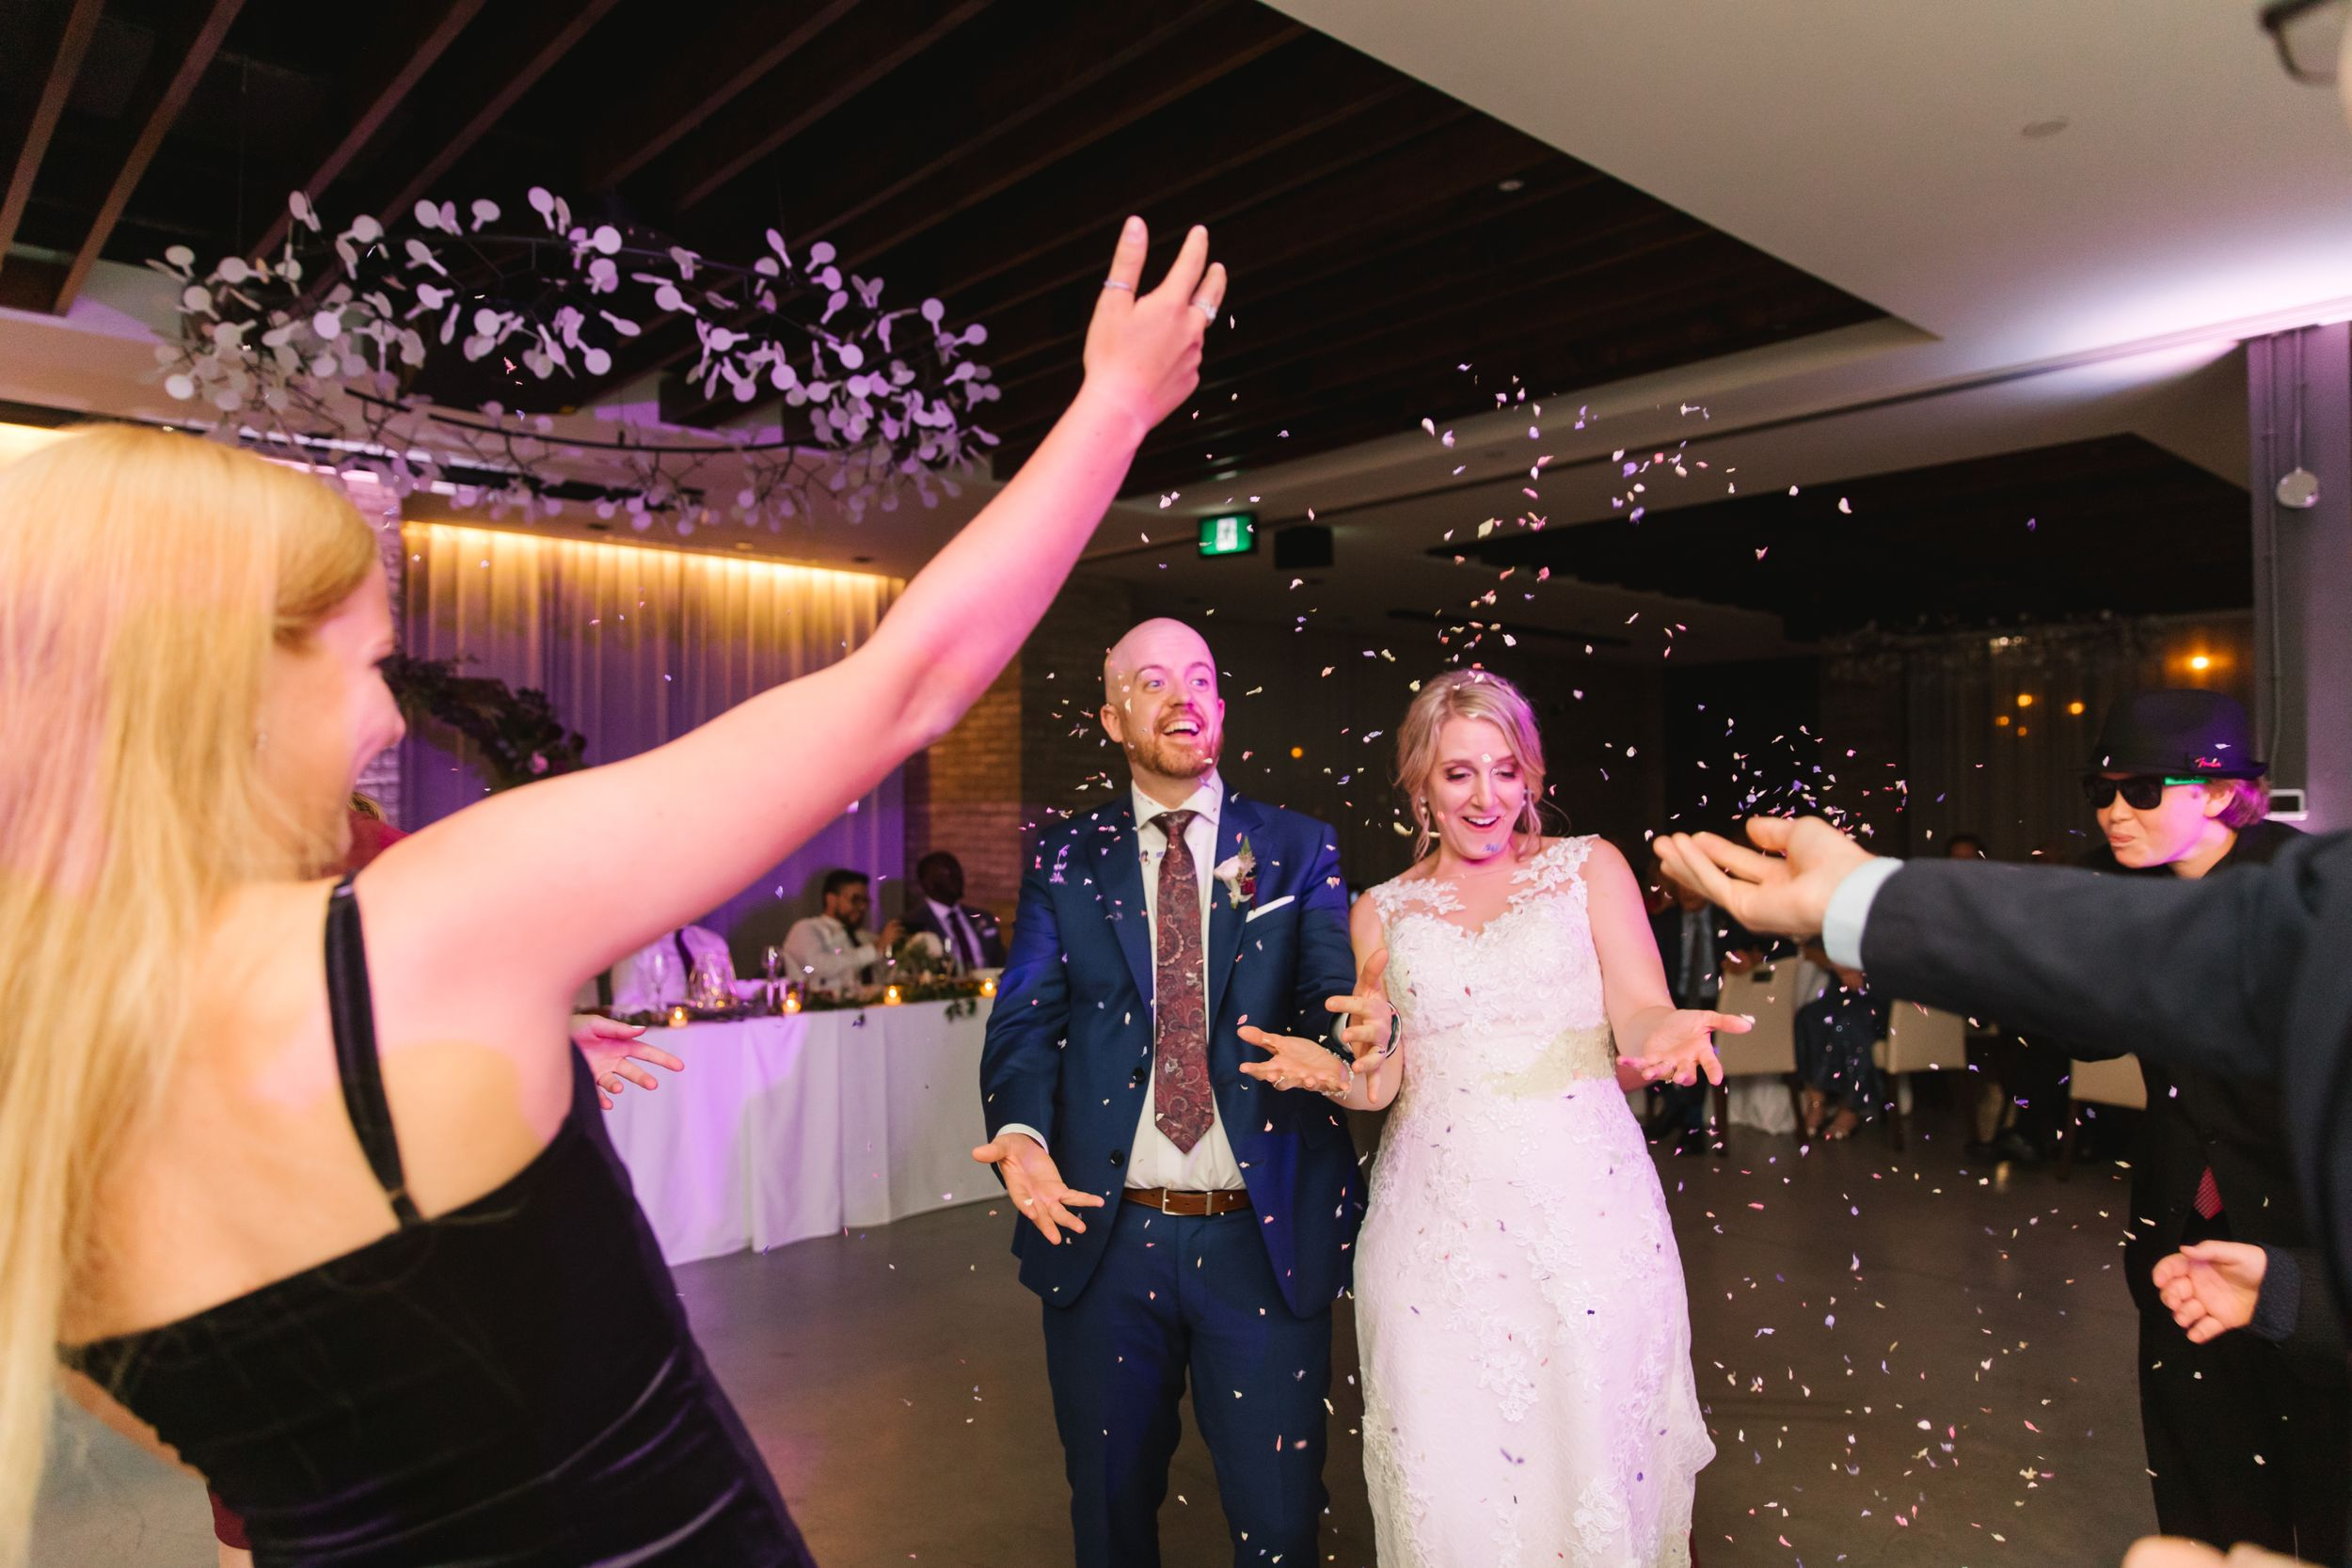 guests throw confetti on bride and groom who are surprised at reception